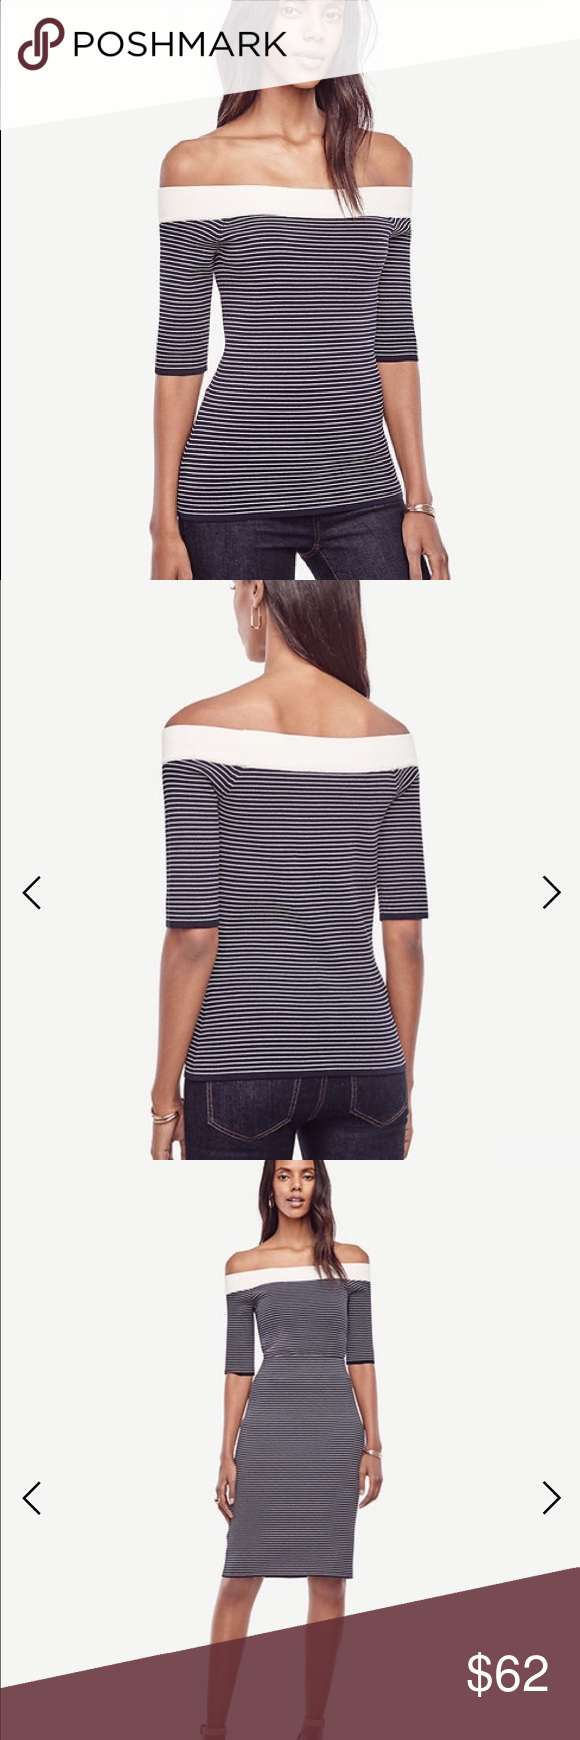 Striped off the shoulder sweater NWT - matched striped sweater ...